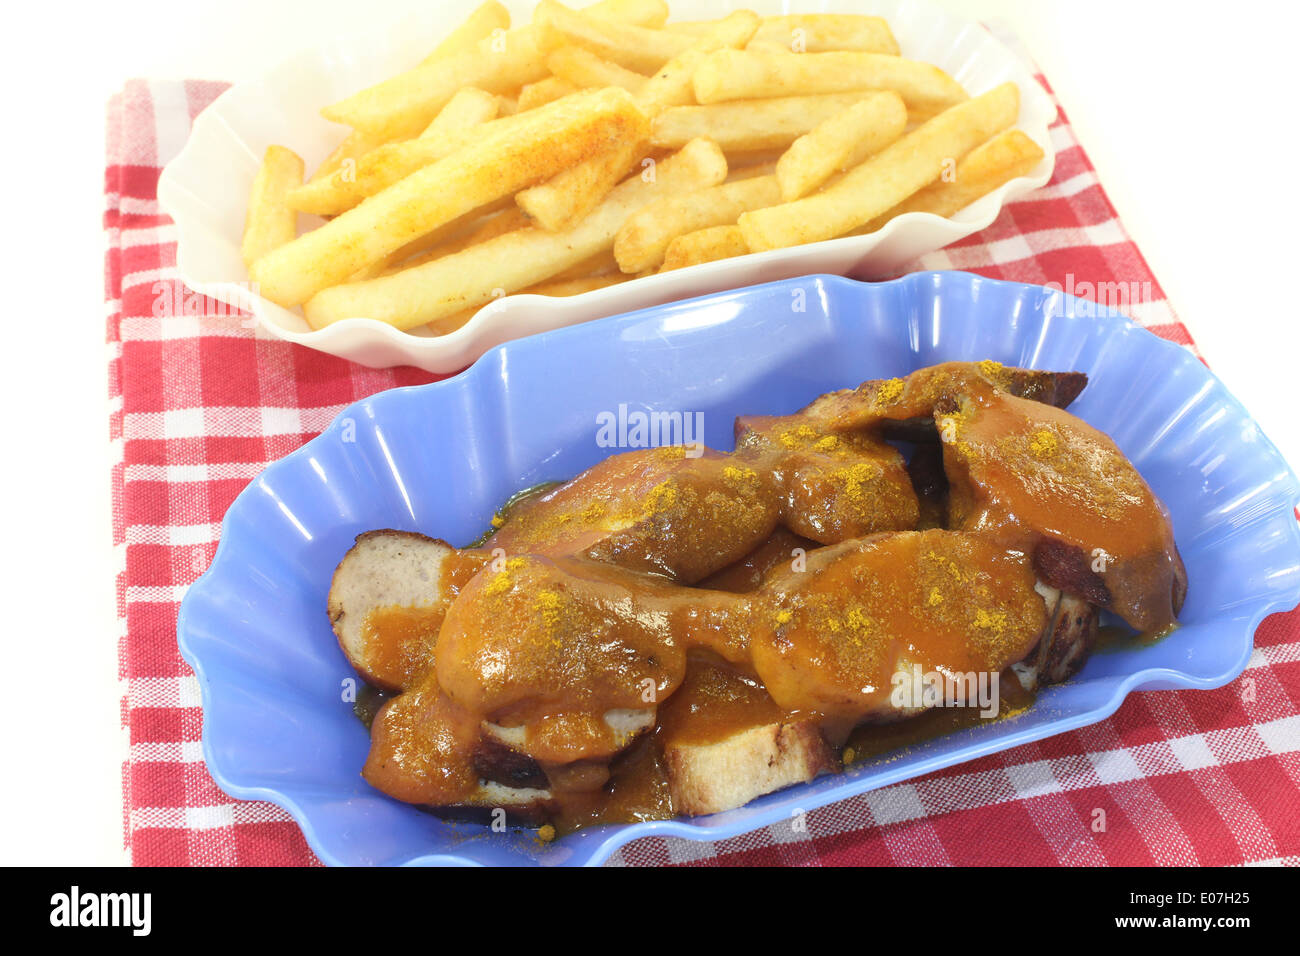 Currywurst with french fries on a light background Stock Photo